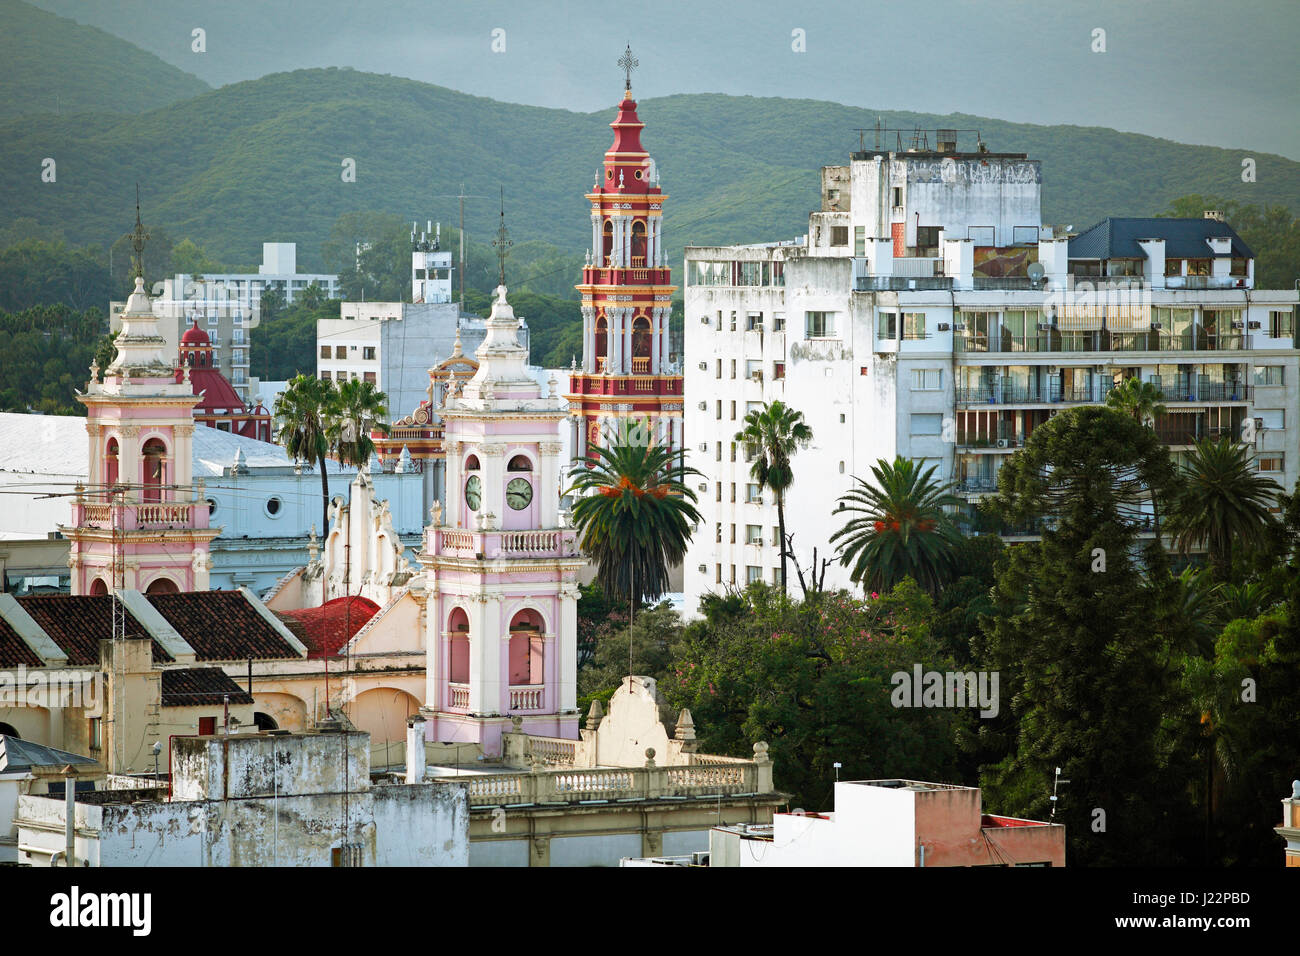 Cityscape with Cathedral and Iglesia San Francisco, Salta, Salta province, Argentina - Stock Image